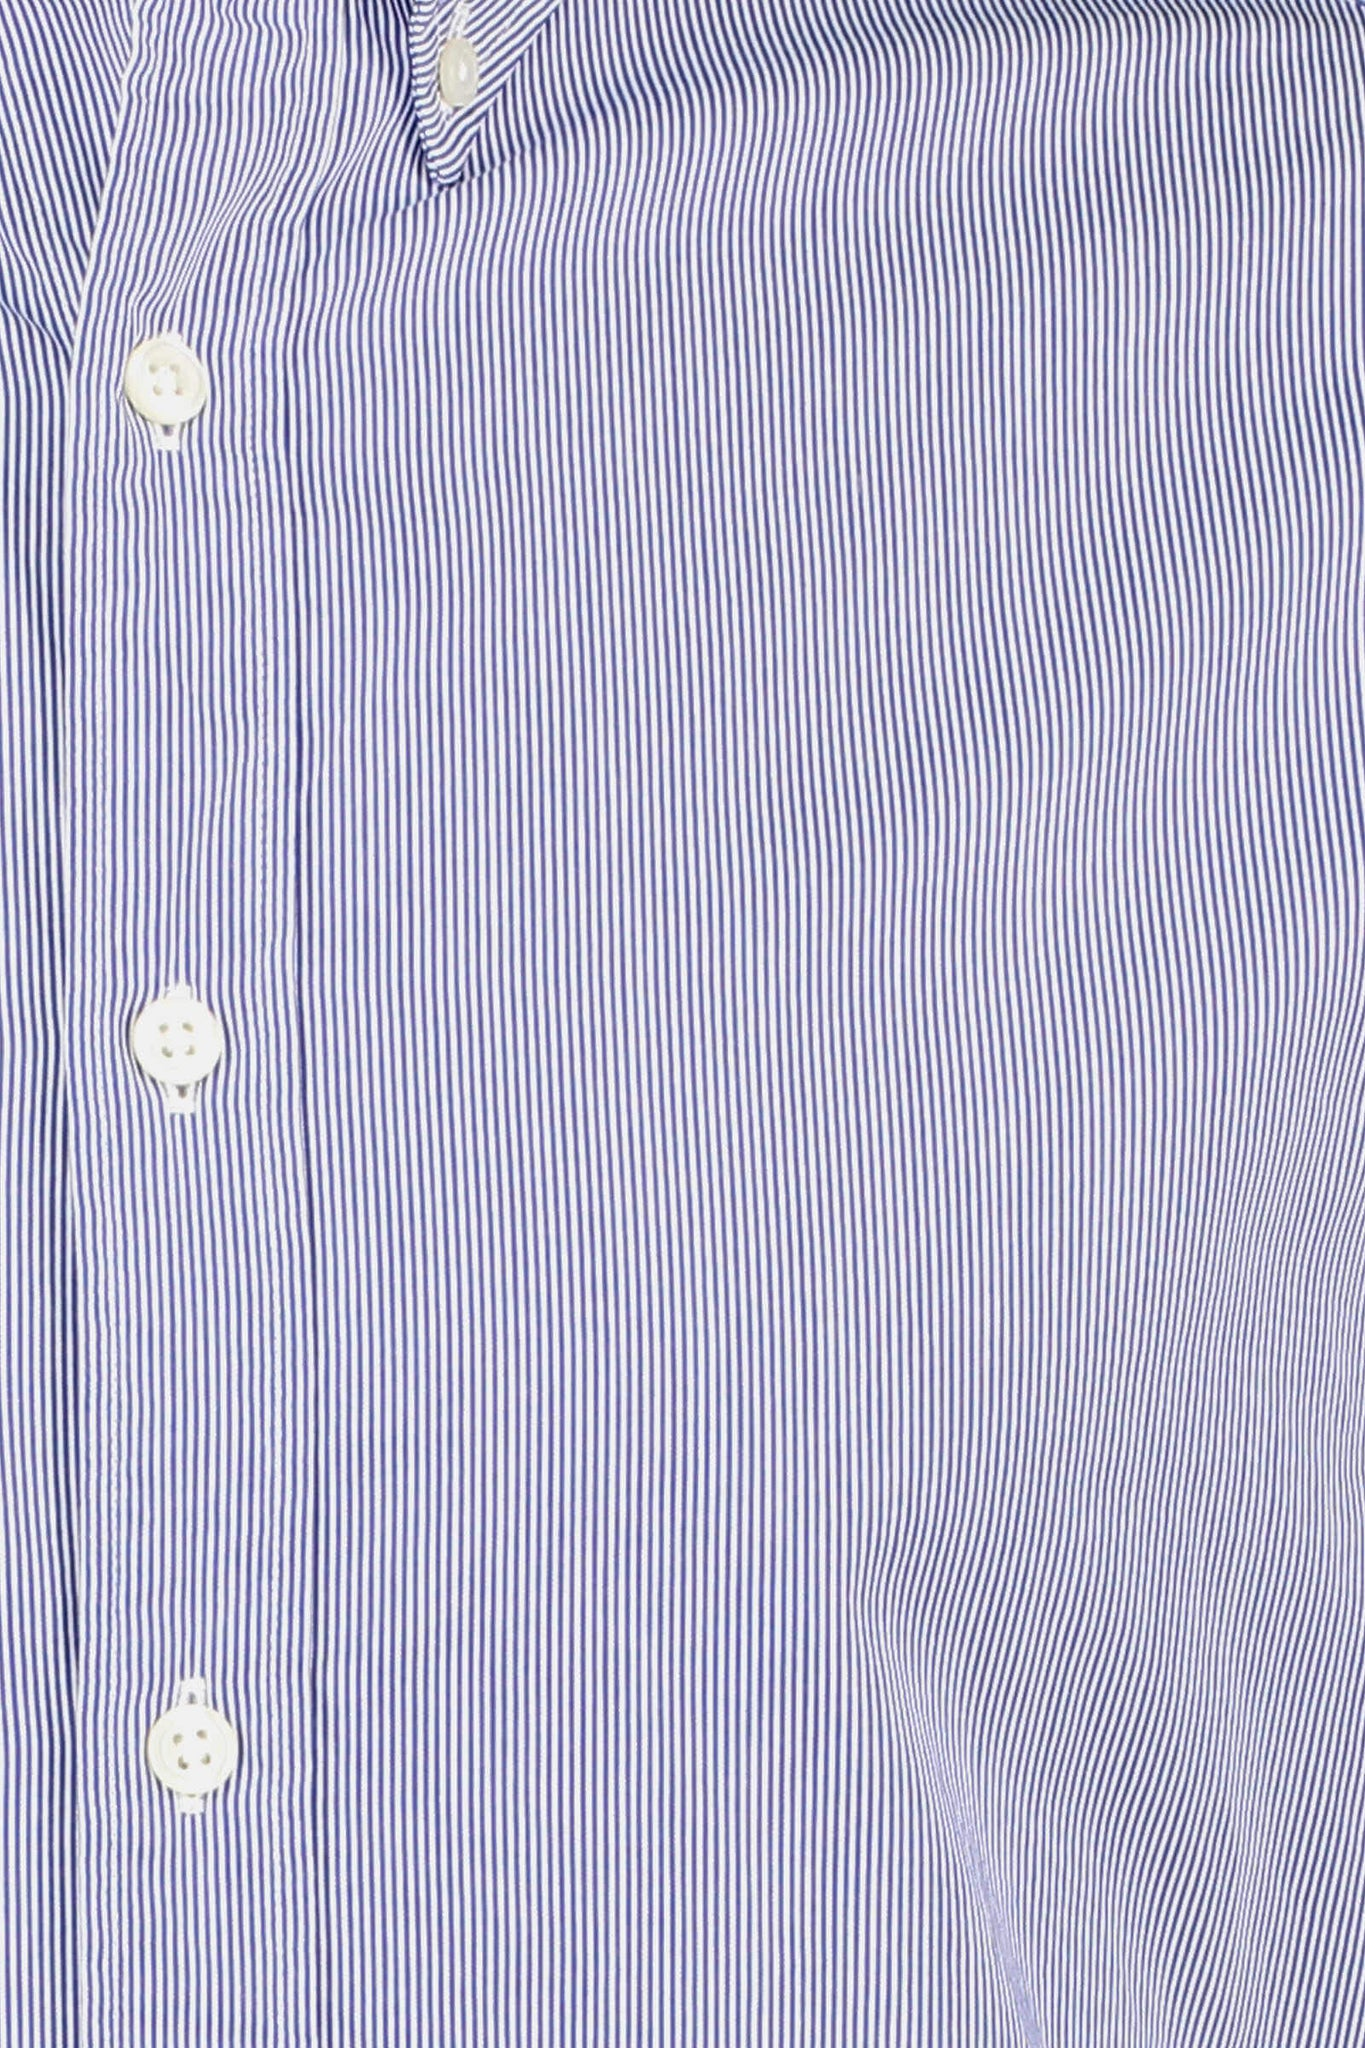 Regular fit fine striped shirt